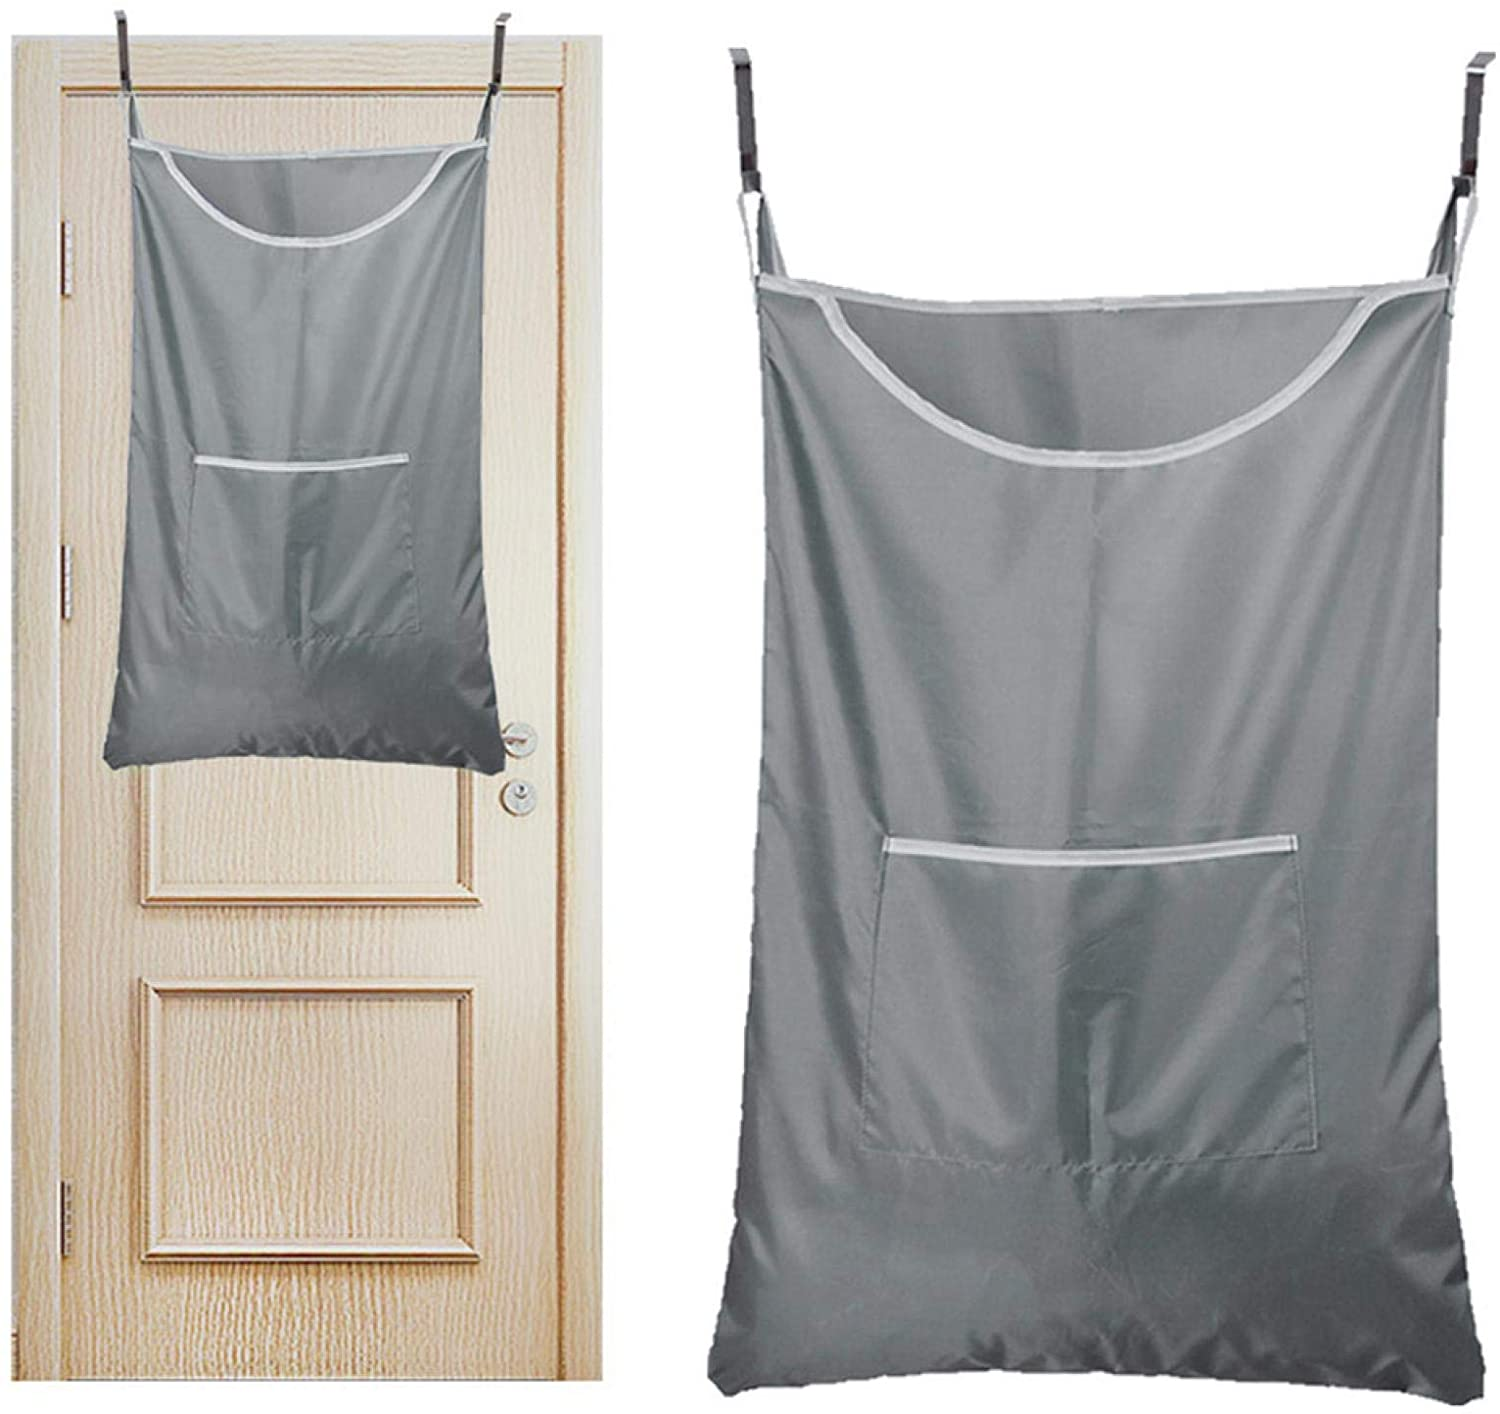 Door Hanging Laundry Hamper Bag, Rip-Stop Toy Storage Bag, Foldable & Space Saving Corner Laundry Organiser with 2PCS Hanging Door Hook and Transparent Suction Cup Hooks, Machine Washable Oxford